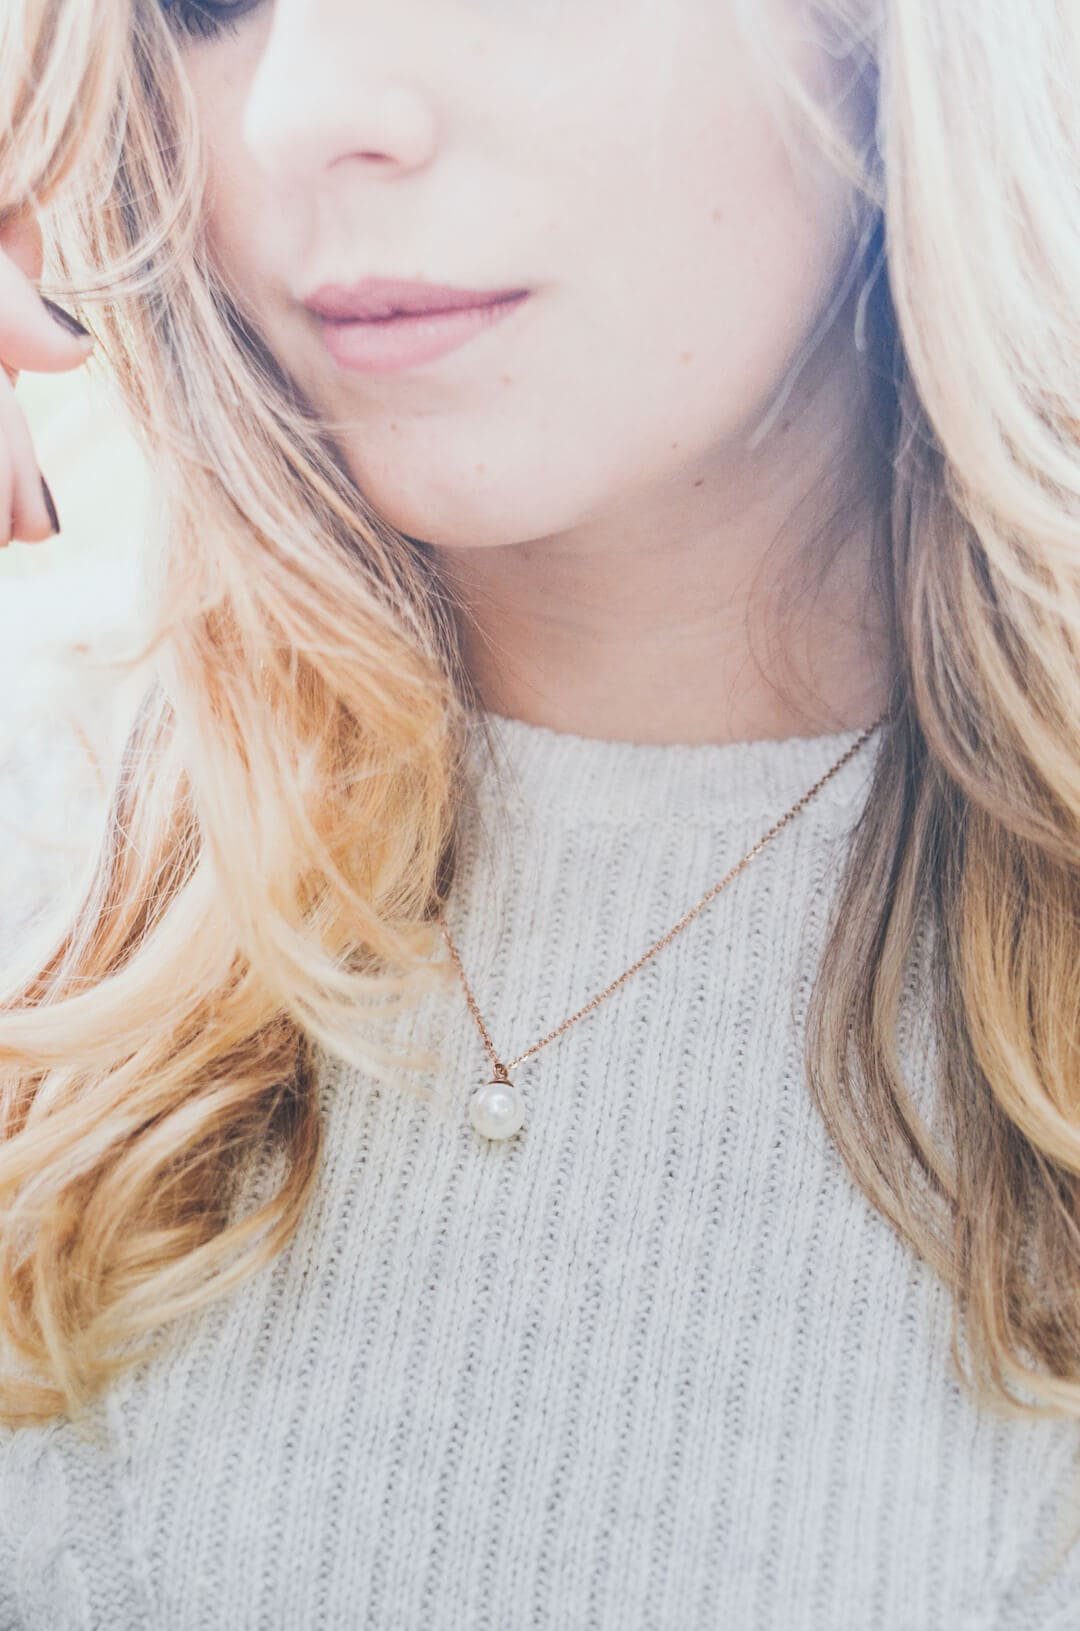 happiness boutique reviews, happiness boutique, affordable jewelry online, affordable jewellery, cute marble earrings, cute pearl necklace, cute affordable jewelry,